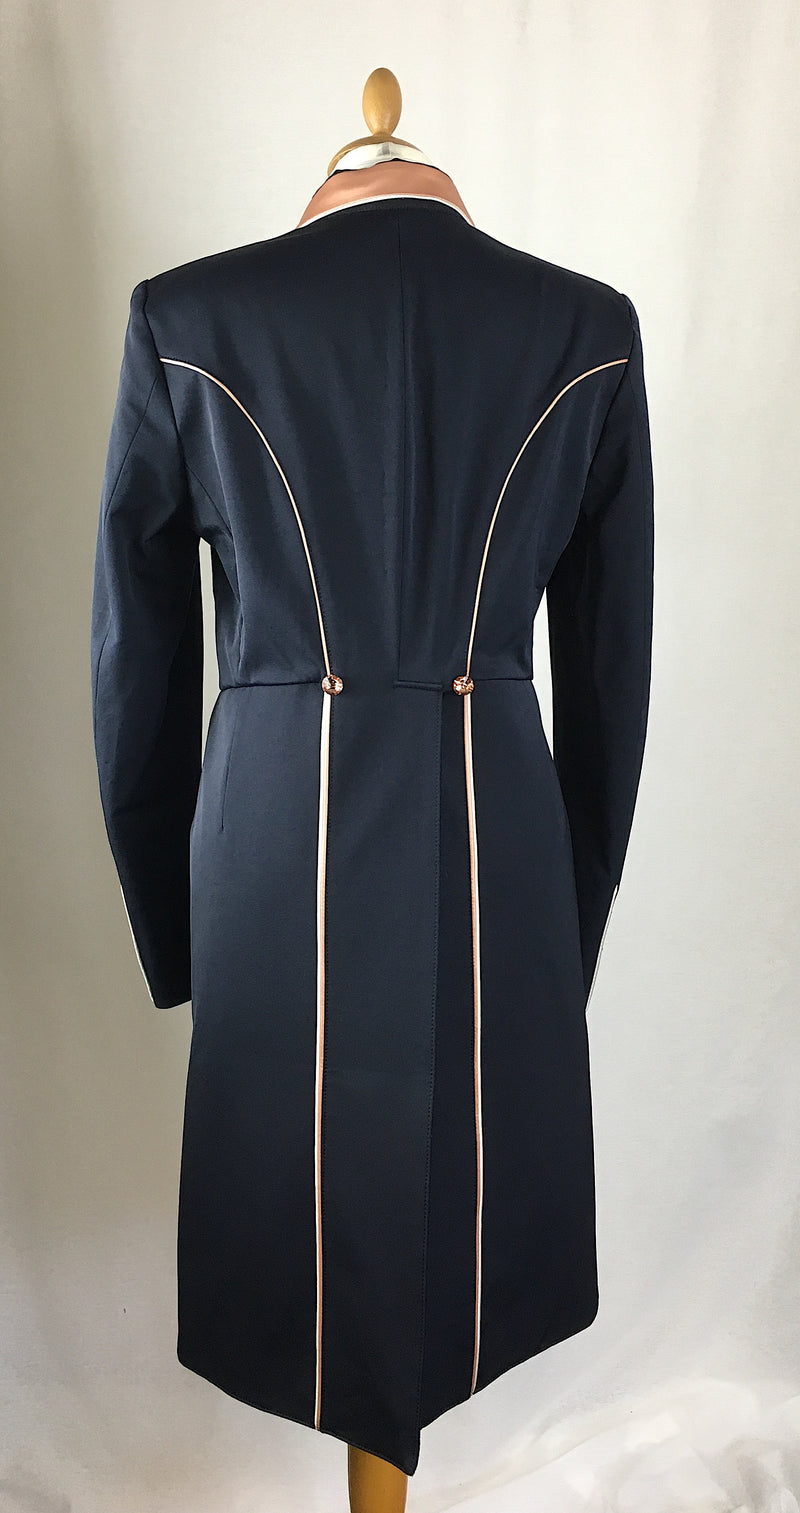 SALE - ISABELL TAILCOAT - SIZE 14 SPL- Navy with Rose Gold trim